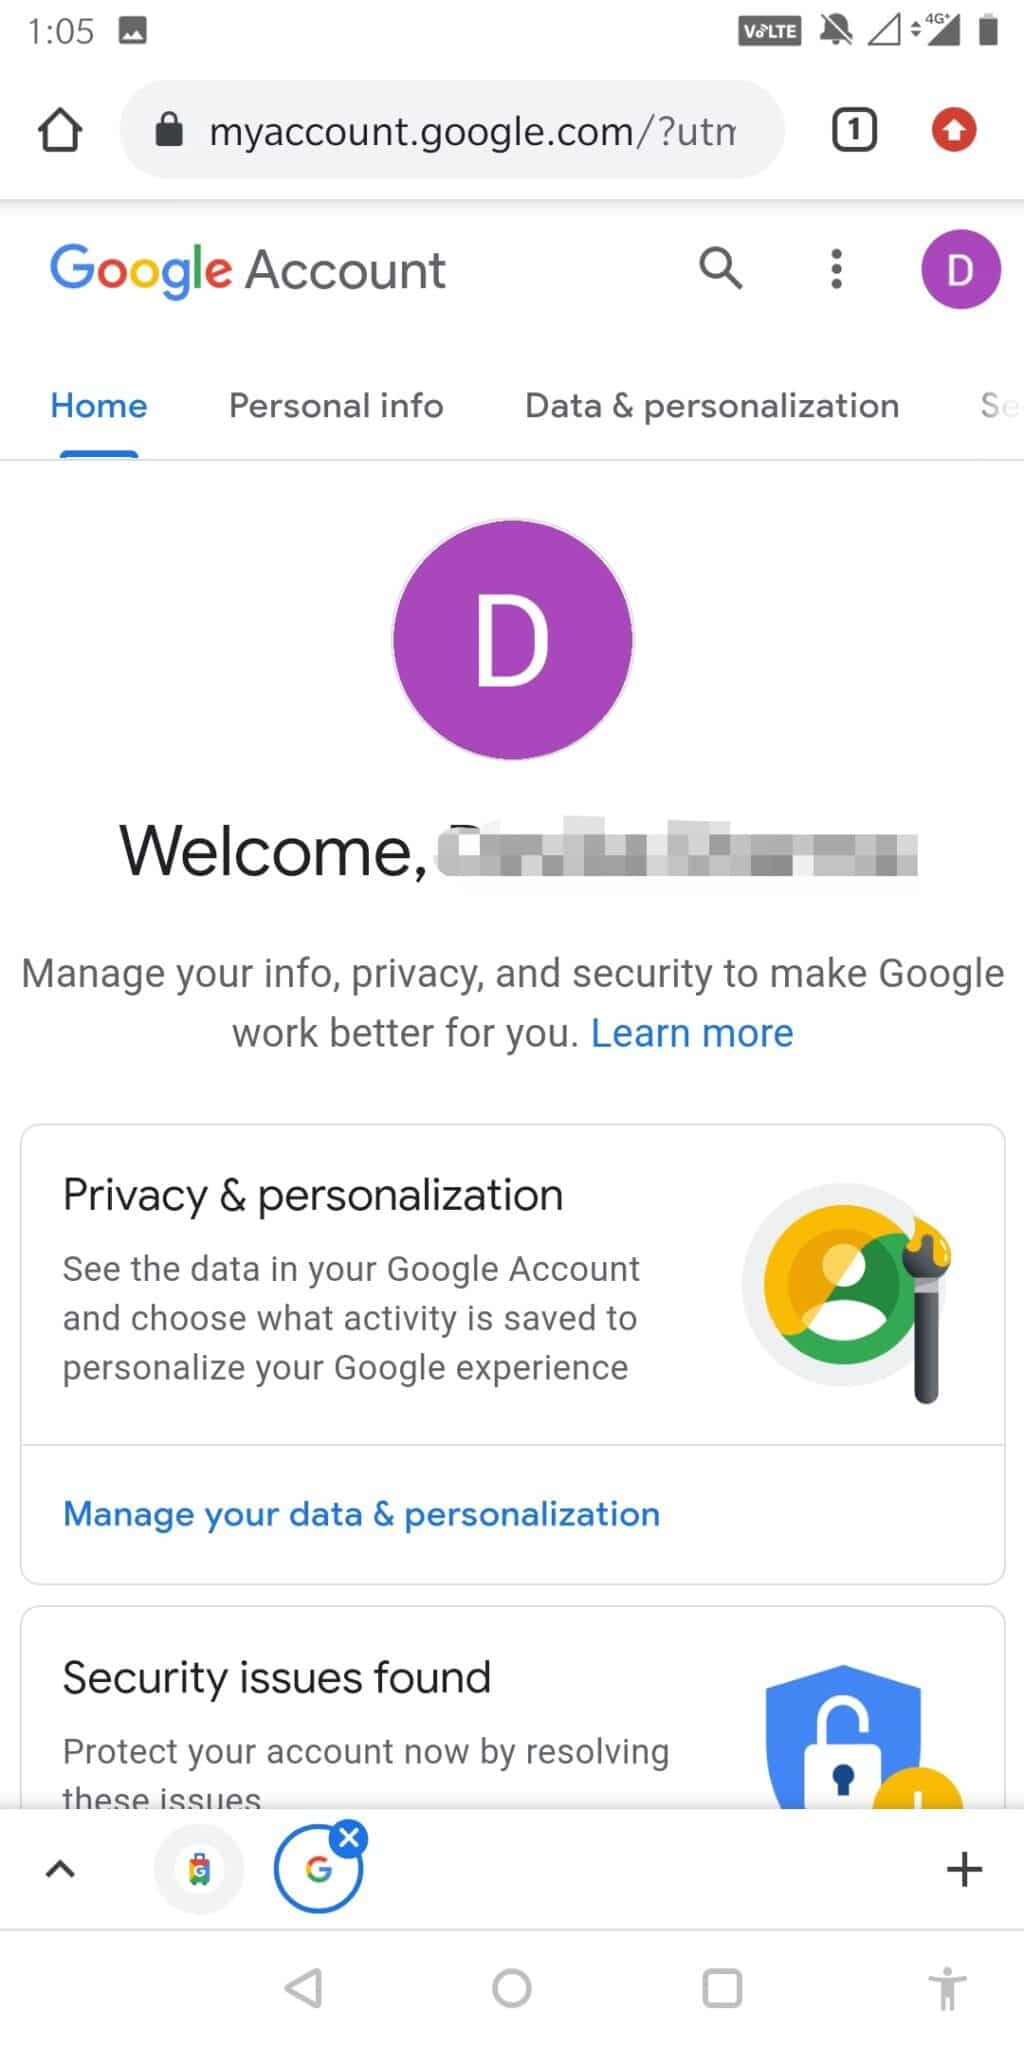 You will now be redirected to your Google Account Settings